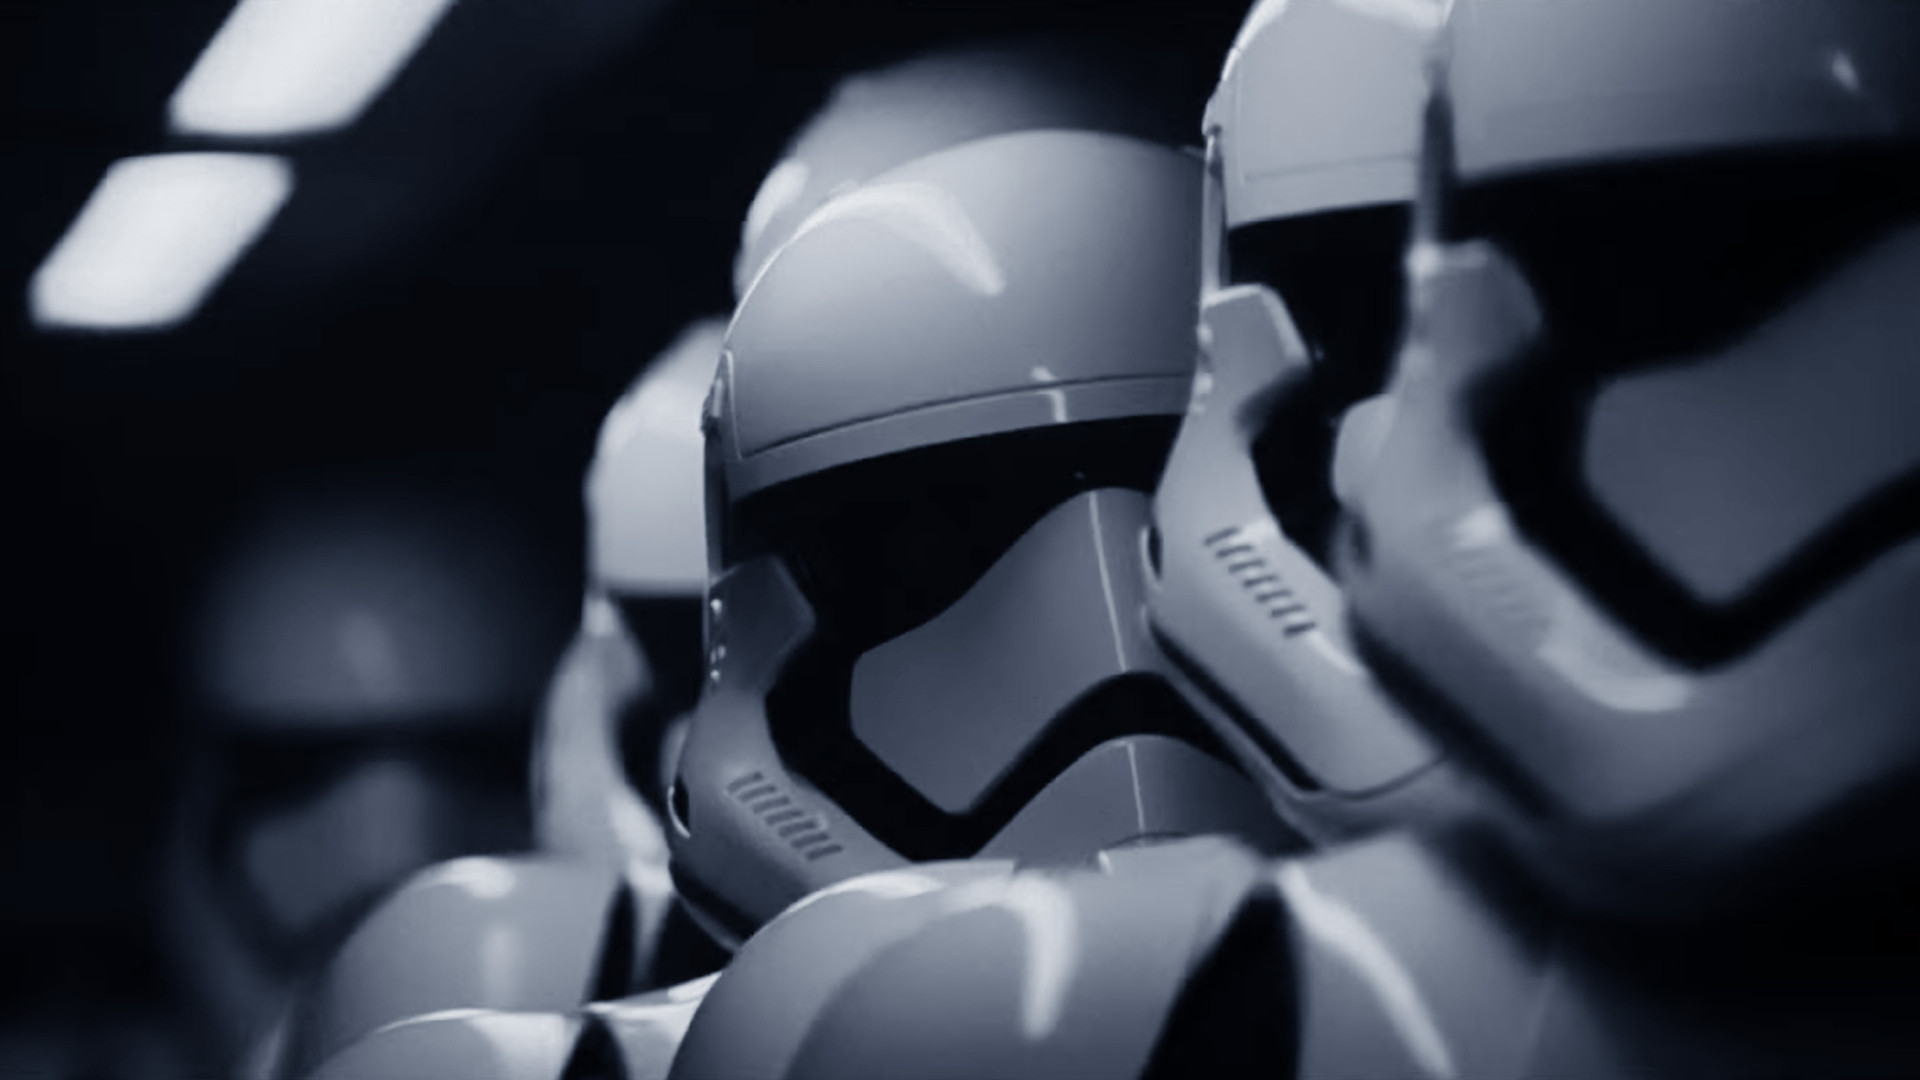 1920x1080 The Force Awakens Stormtroopers Wallpaper